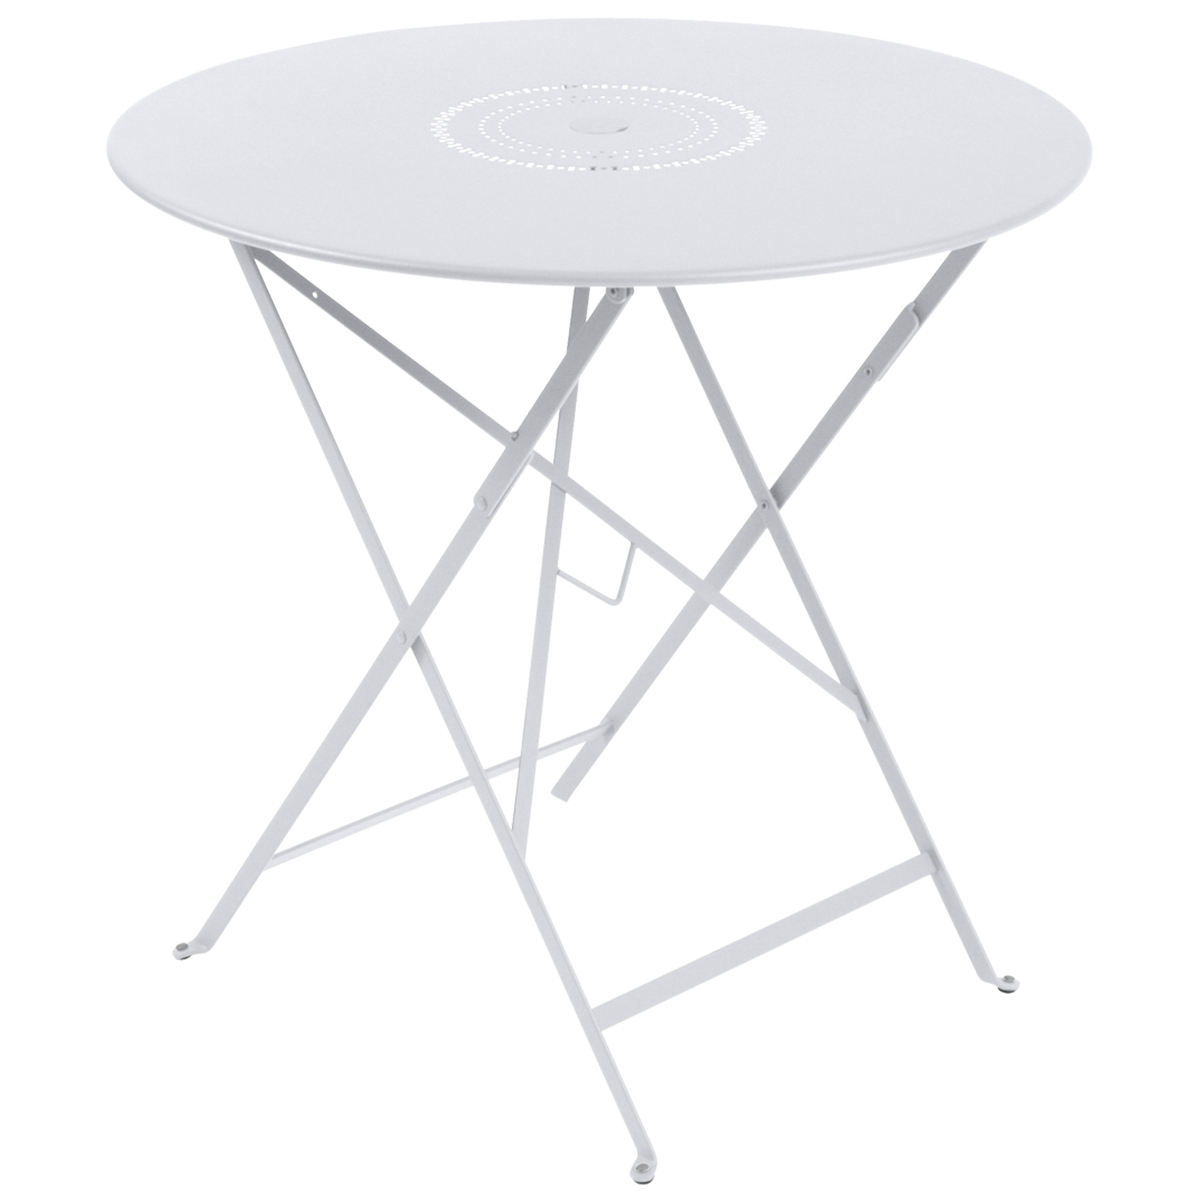 Fermob Floreal table 77 cm, cotton white from Fermob